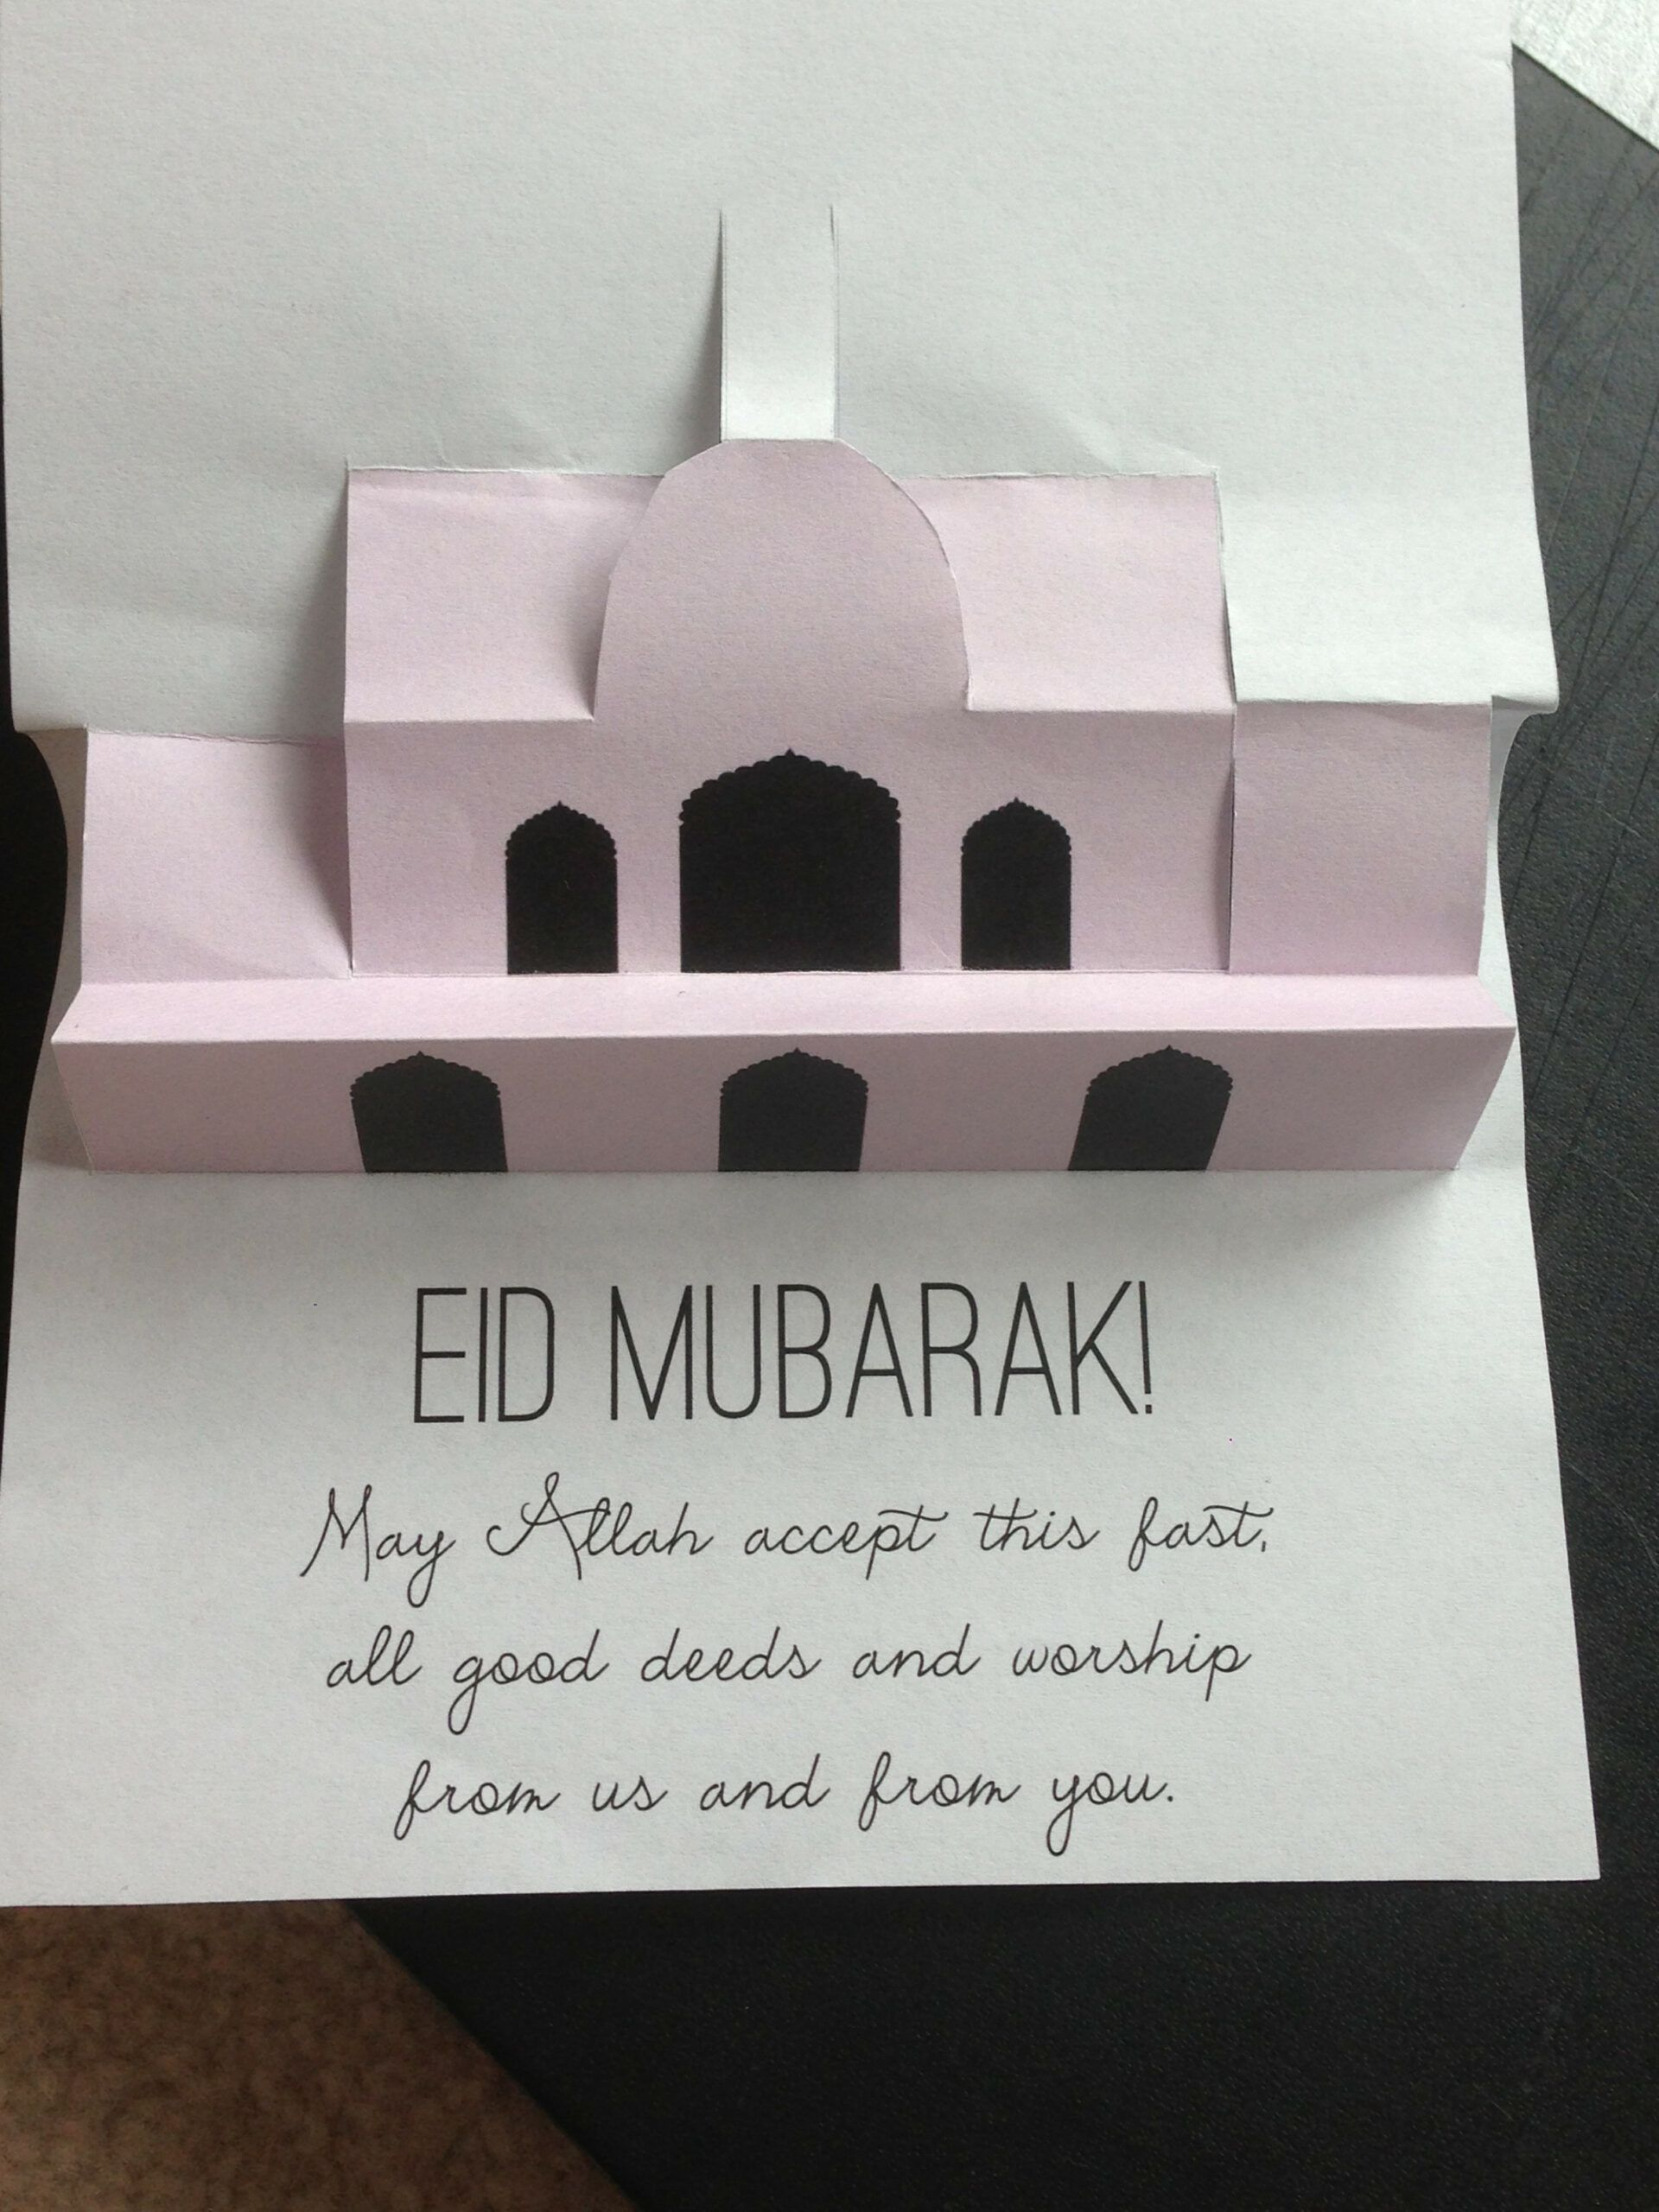 8 New Ideas Make Your Own Eid Greeting Card In 2021 Eid Greeting Cards Eid Card Designs Eid Cards